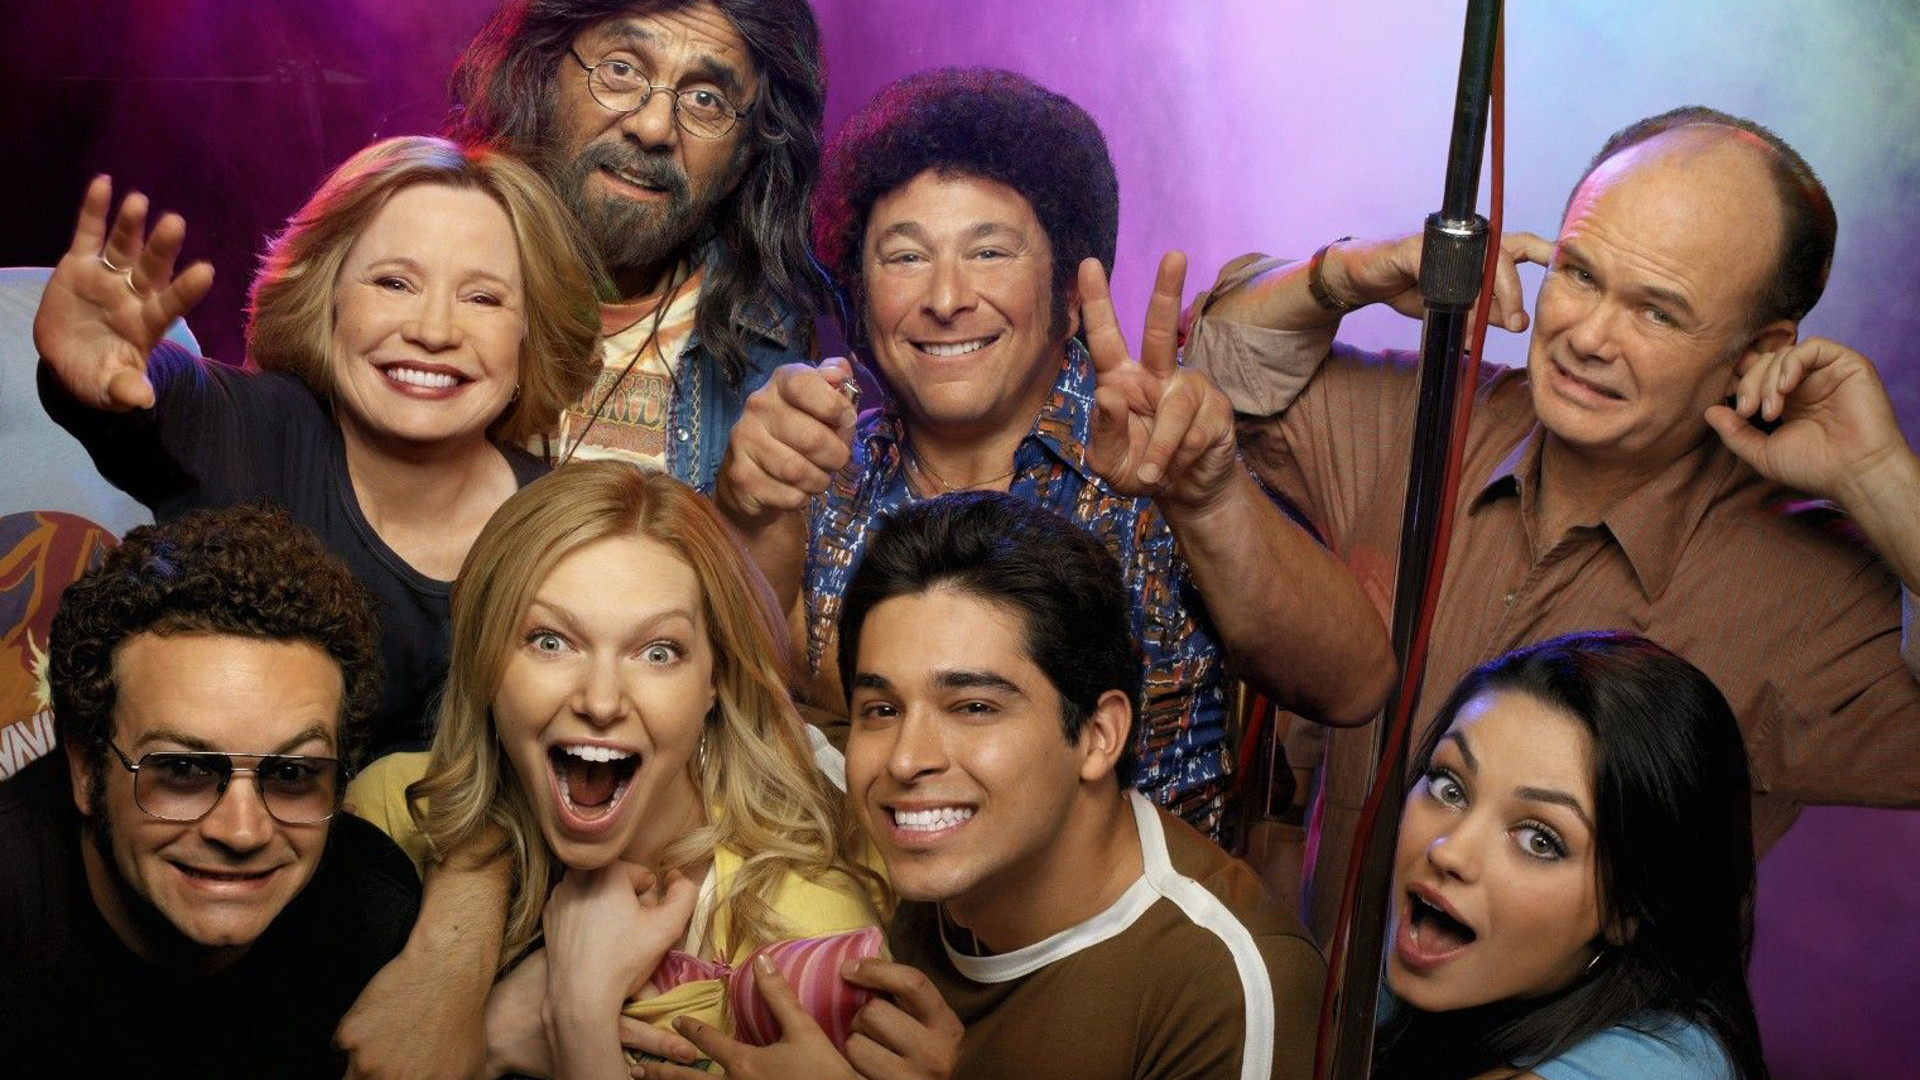 70s show cast 10 groovy that 70s show musical moments ifc